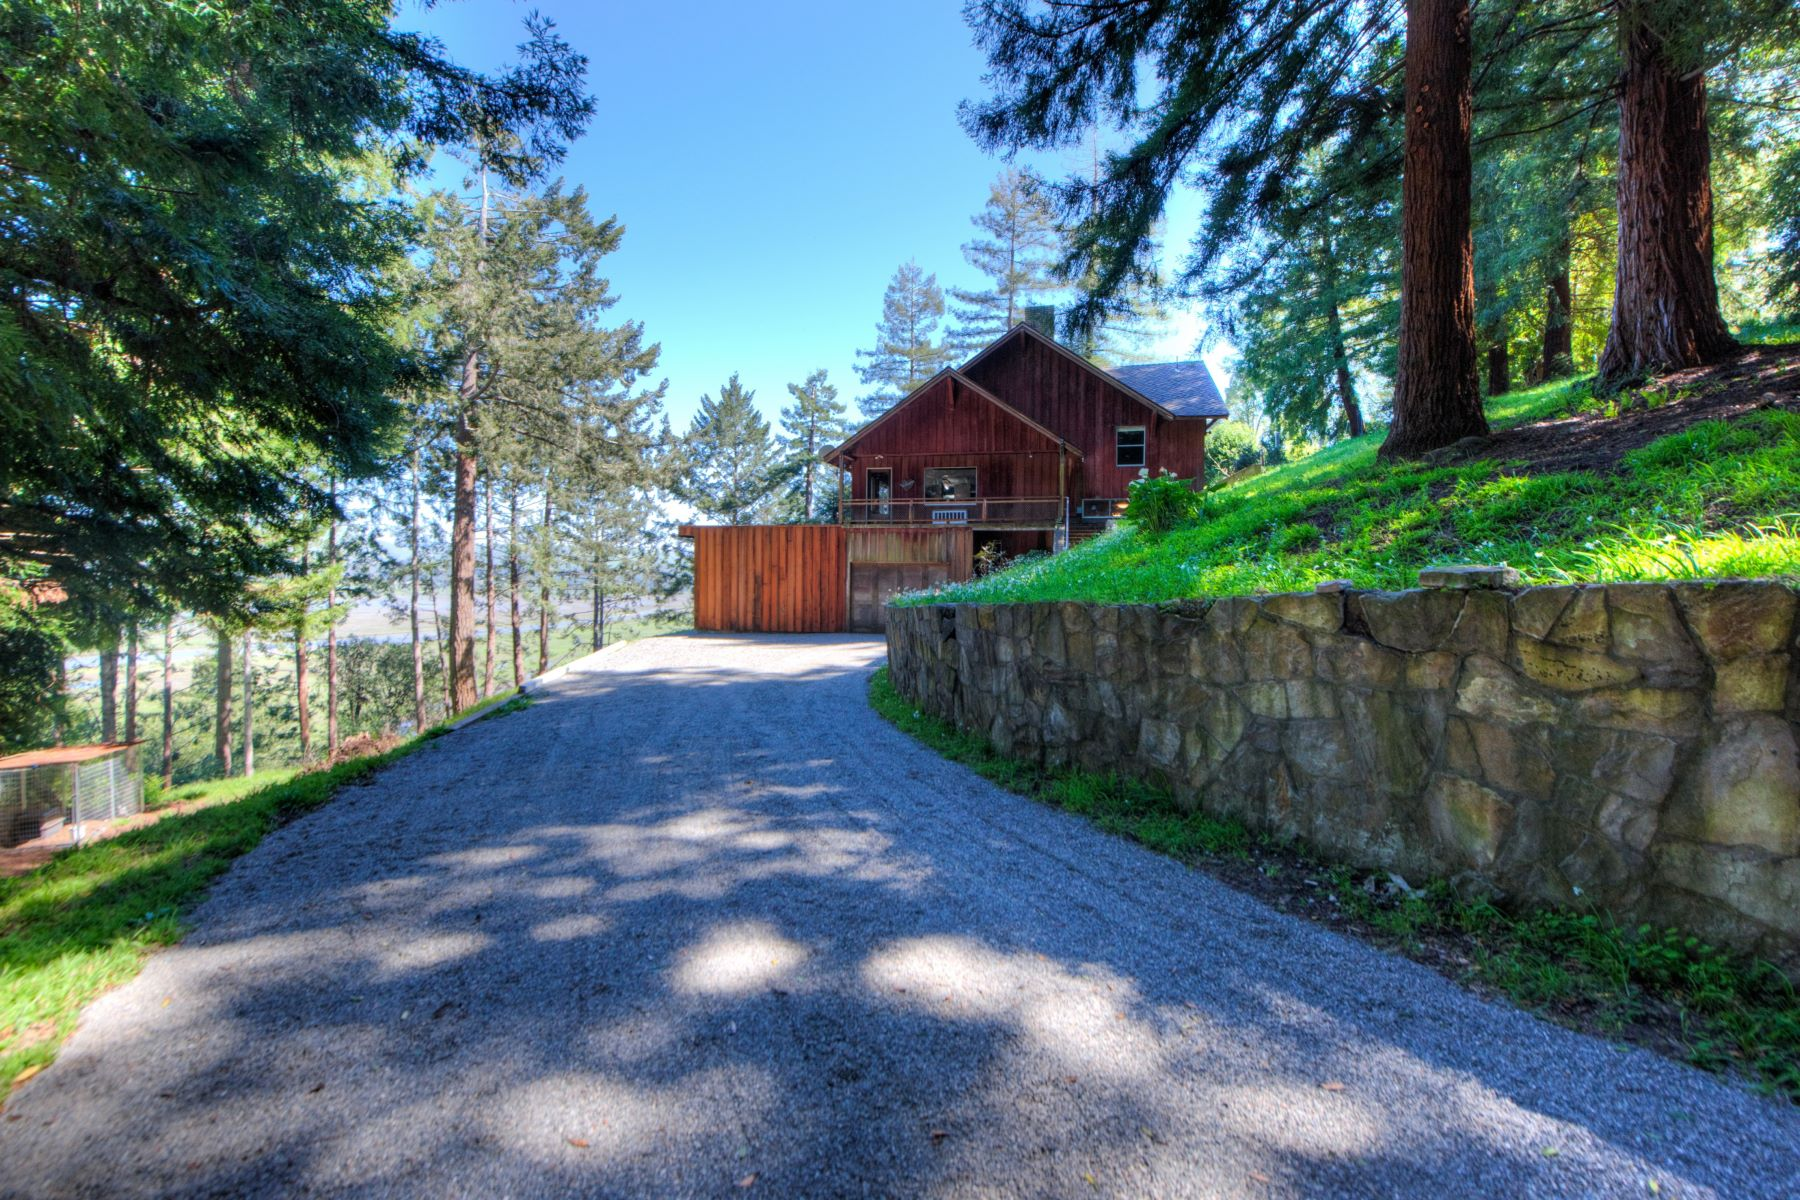 Casa Unifamiliar por un Venta en Vintage Inverness Home on 1.49 Acres, Stunning Water Views 15 Drakes View Drive Inverness, California 94937 Estados Unidos